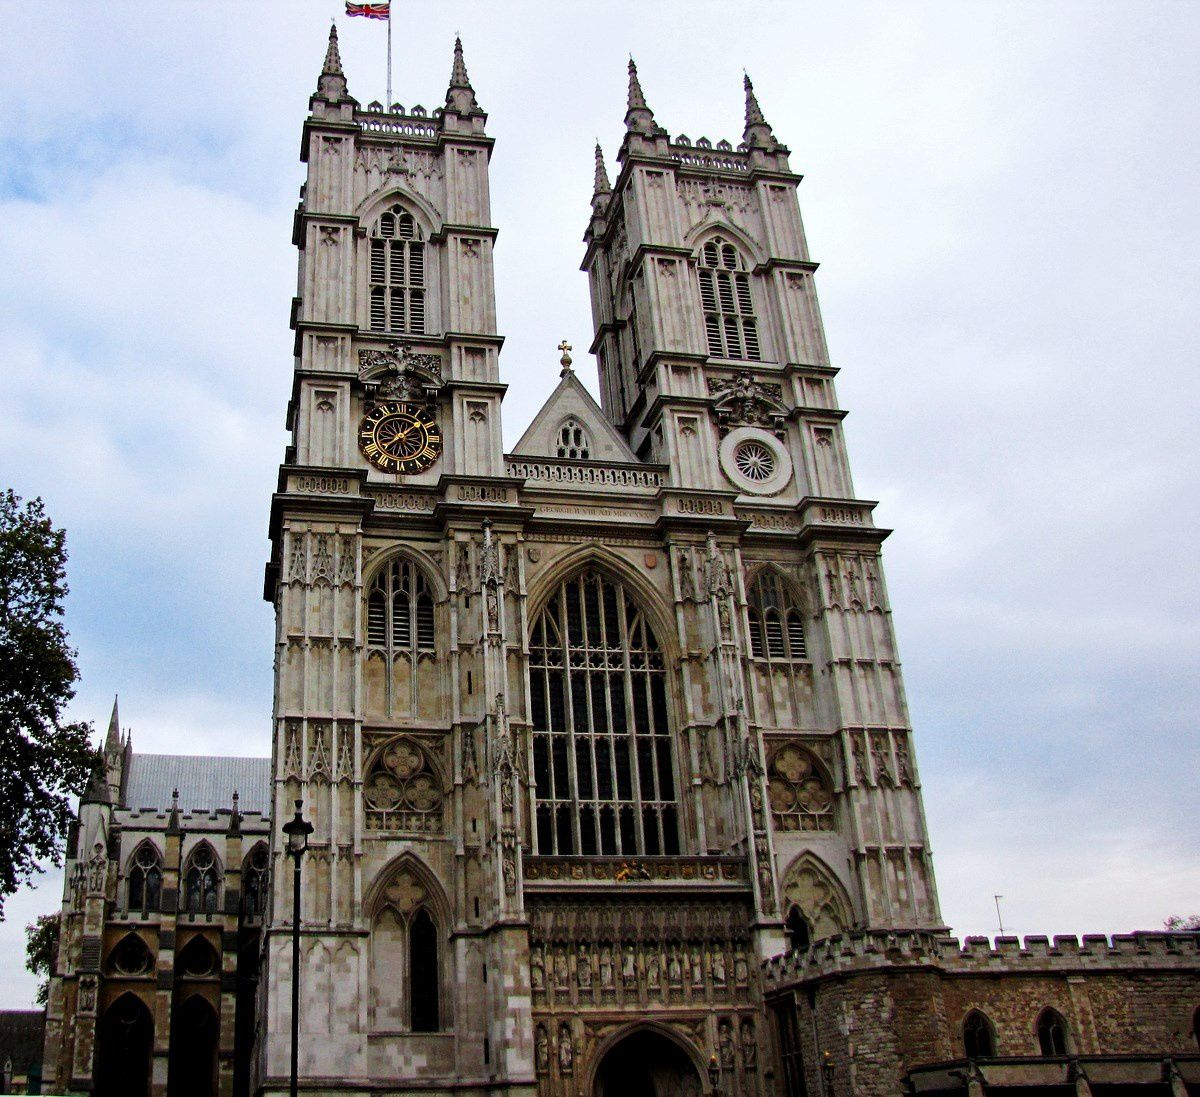 Westminster abbey et son cloître, Londres